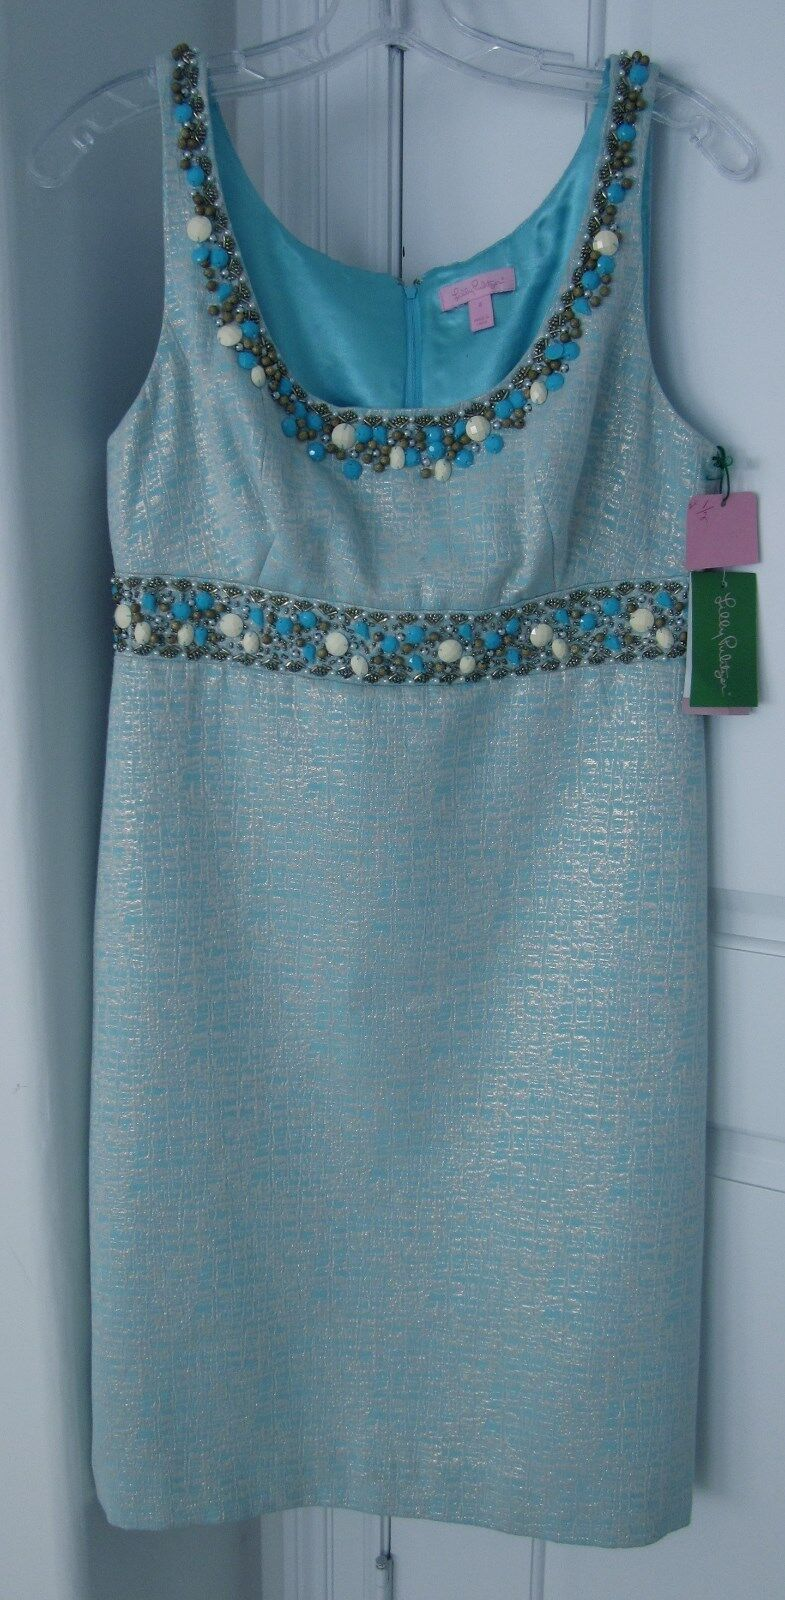 Lilly Pulitzer Pulitzer Pulitzer Stunning Shorely bluee Sidra Jewels Ultra Feminine NWTs Sz 8 Dress 49baf0